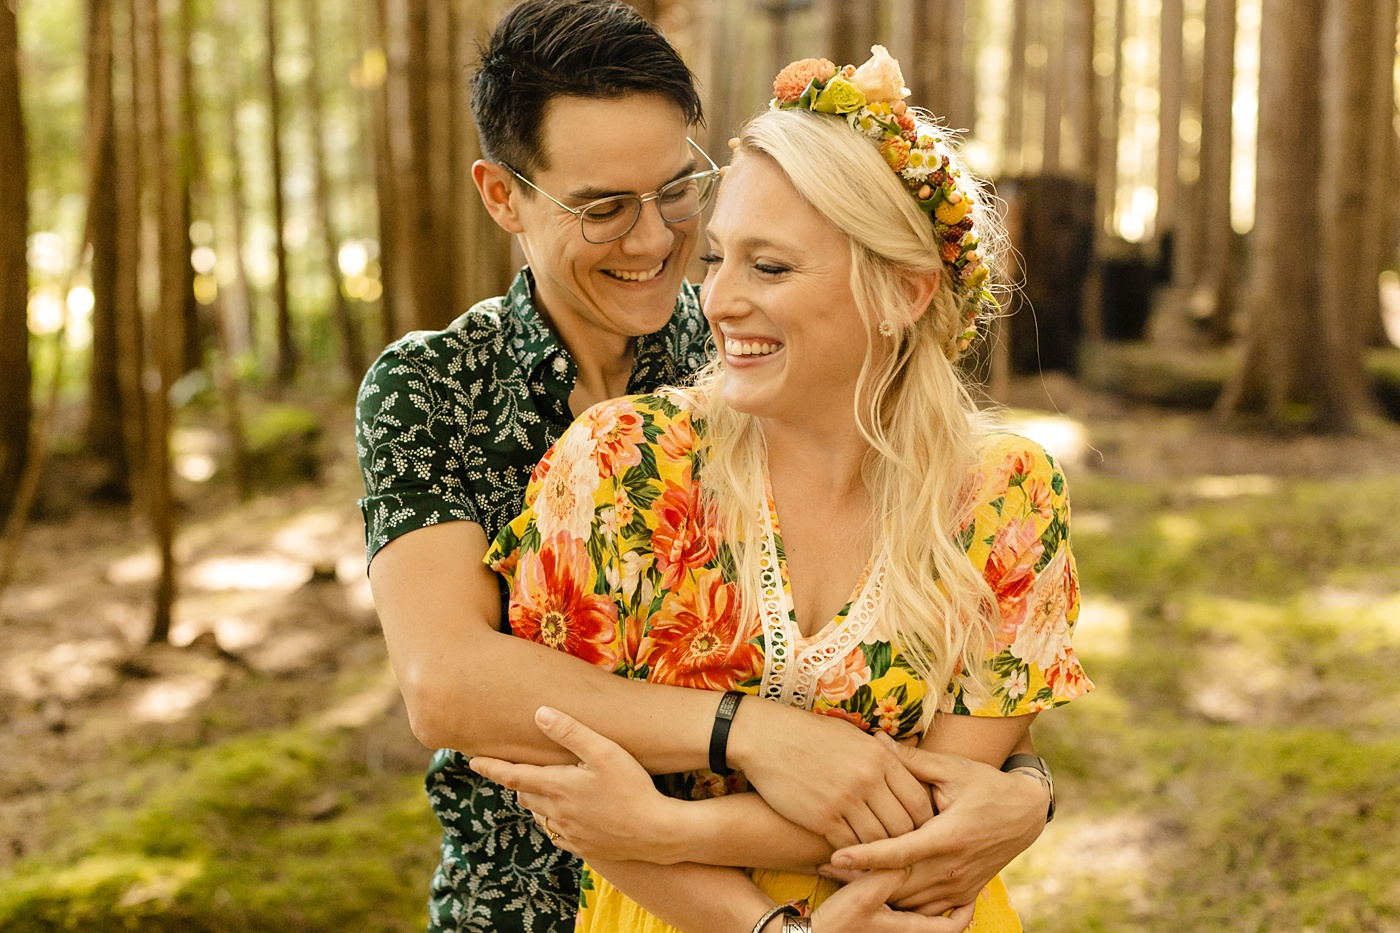 Engagement session outfit ideas yellow green flower crown